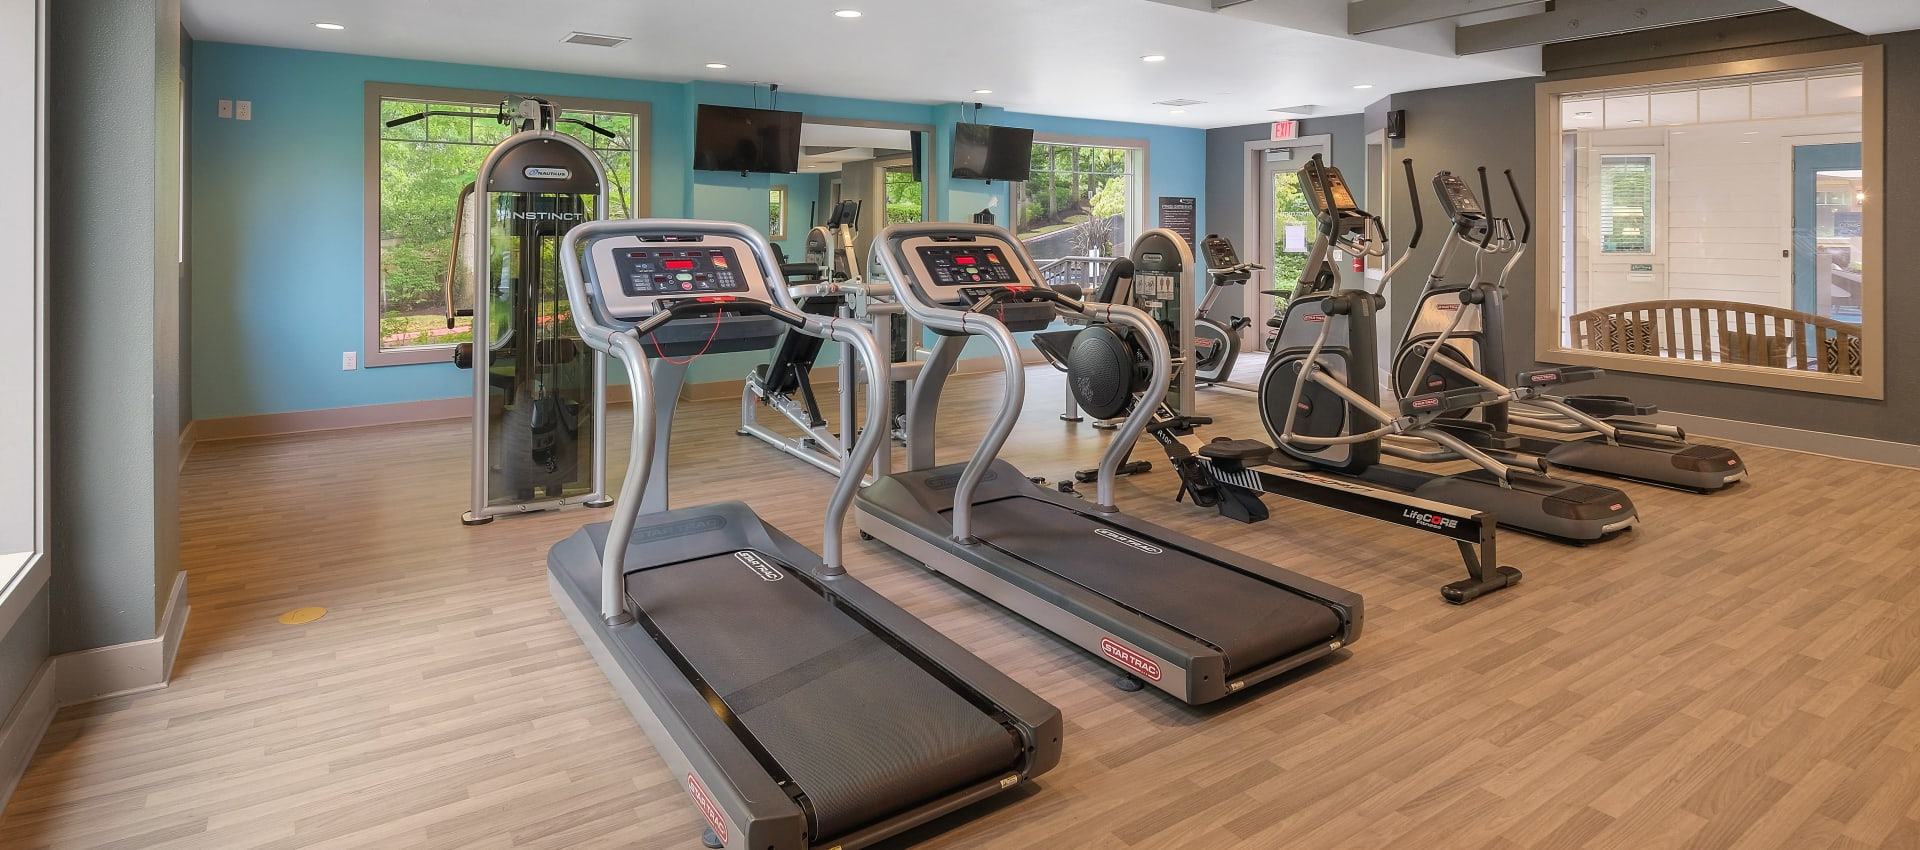 Well Equipped Fitness Center at Waterhouse Place in Beaverton, OR